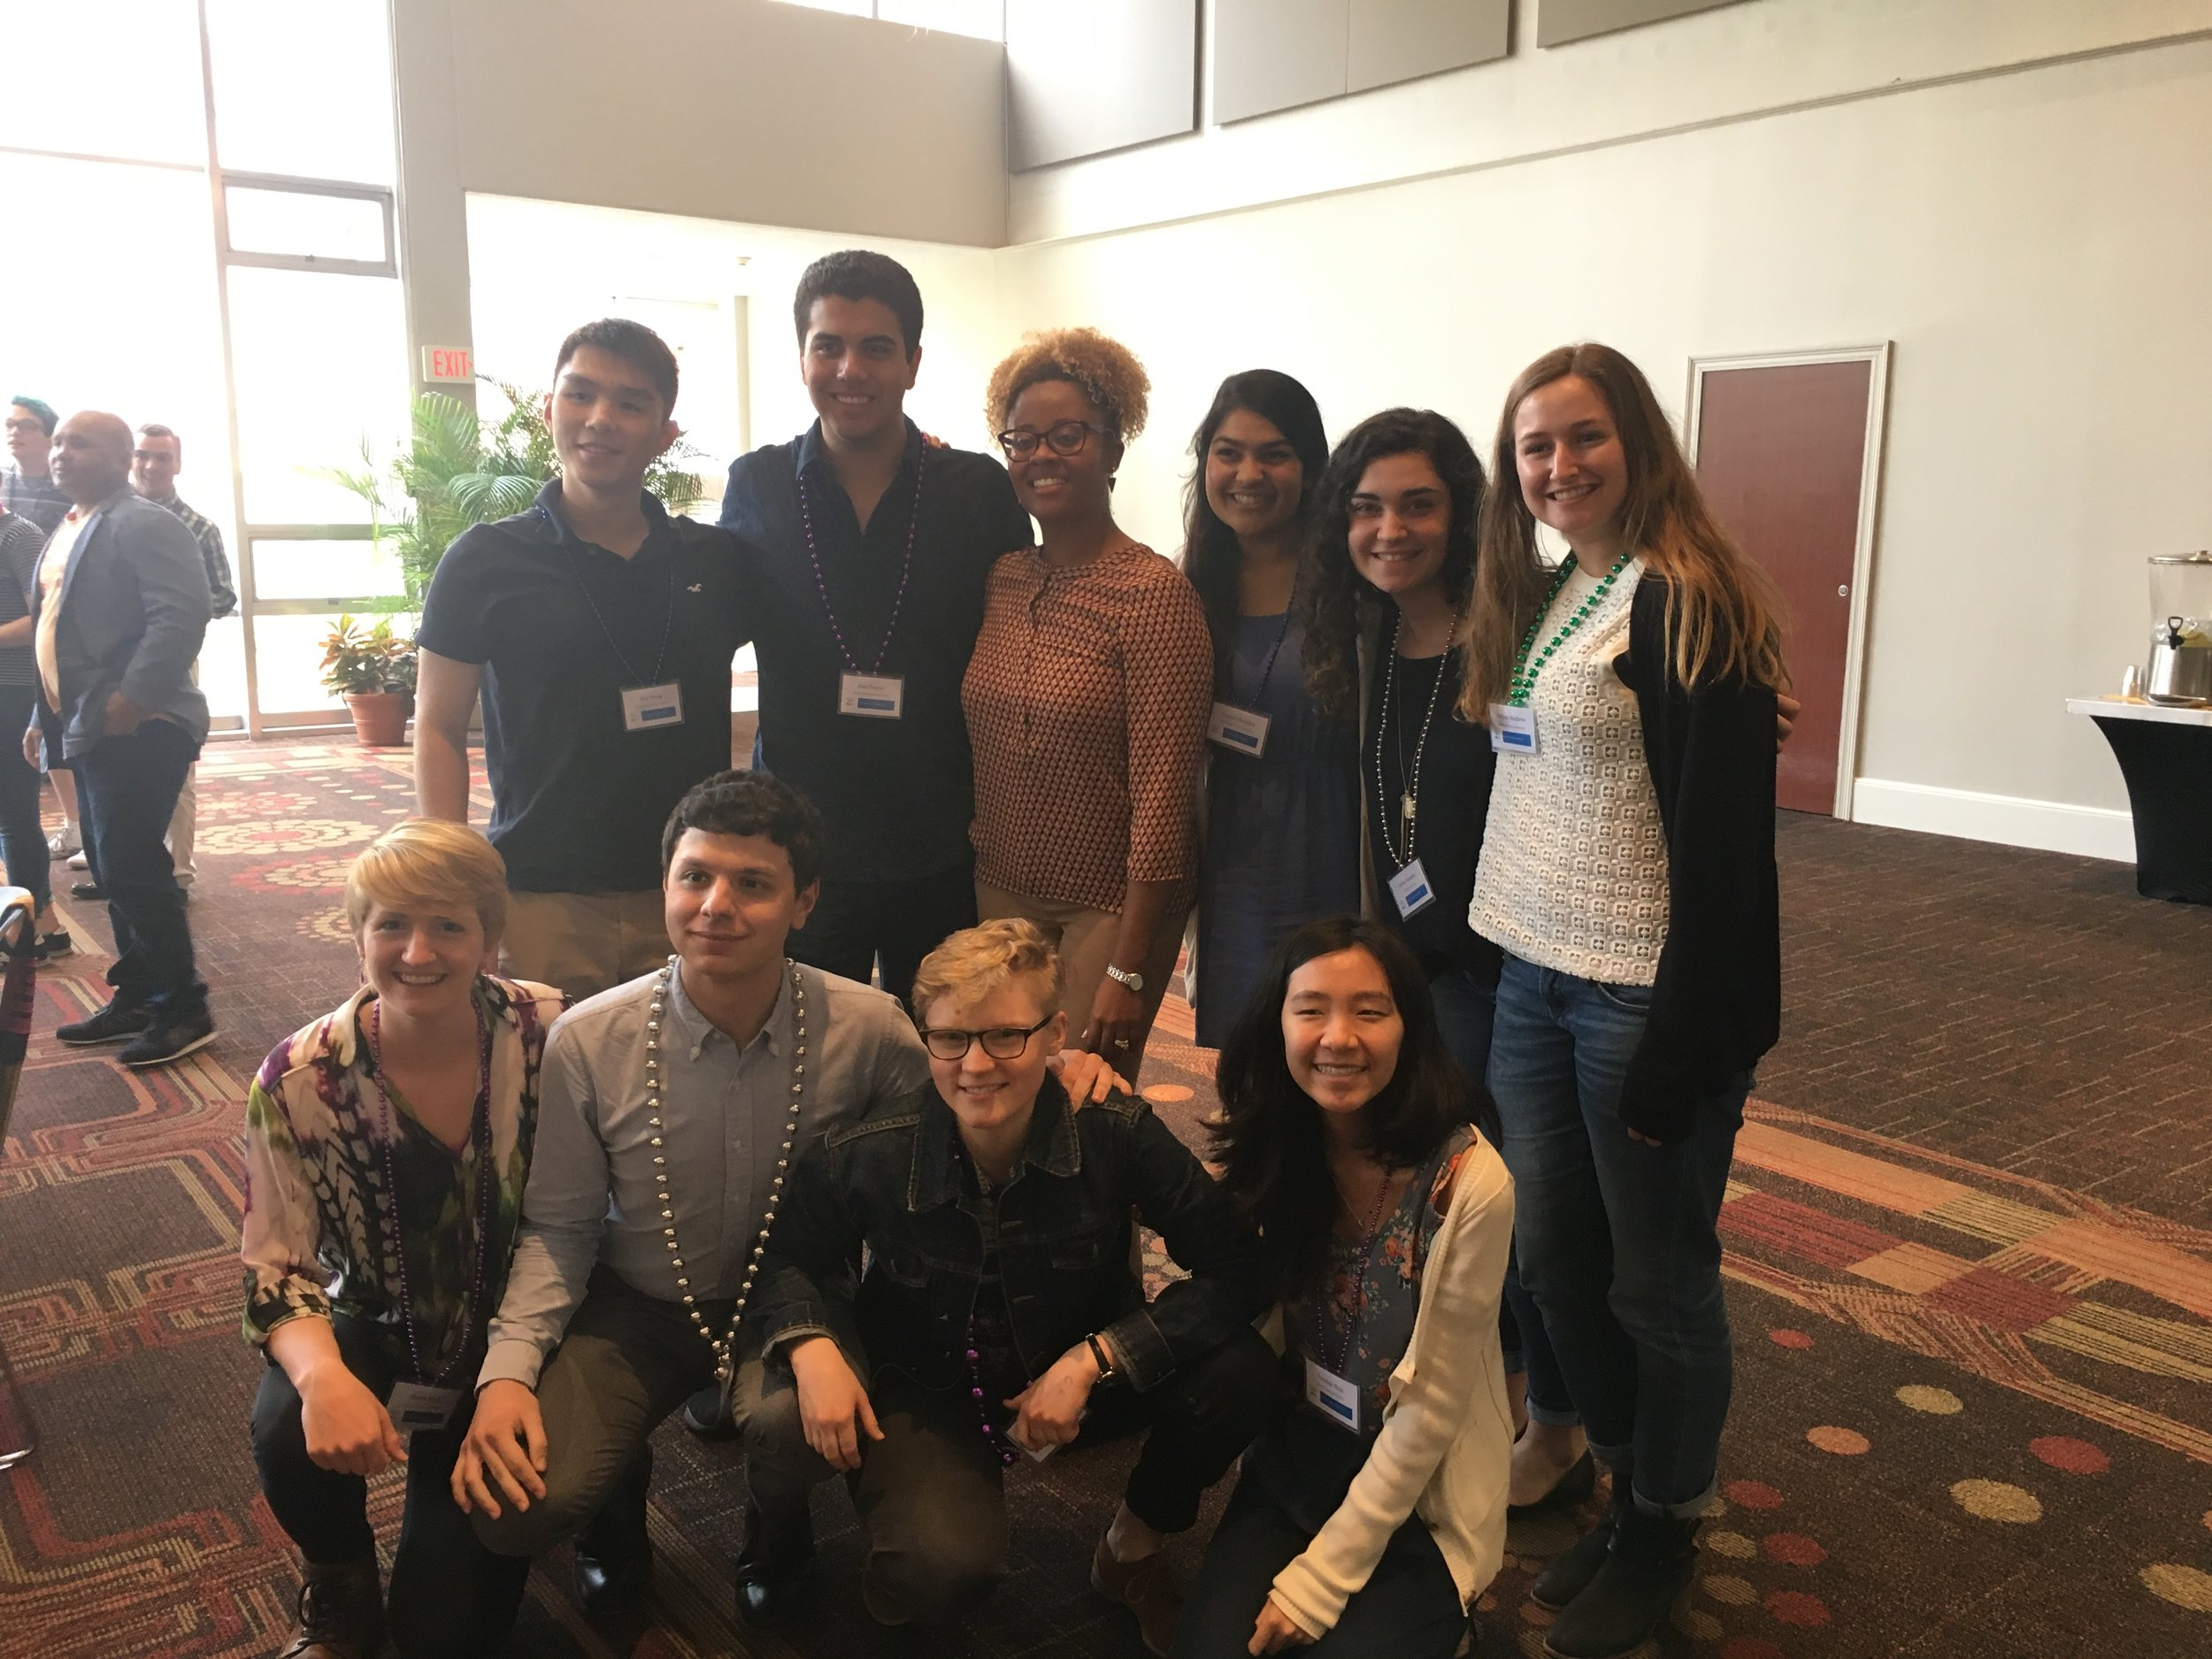 Fordham University and Santa Clara University students with guest speaker at Teach-In on Restorative Justice.